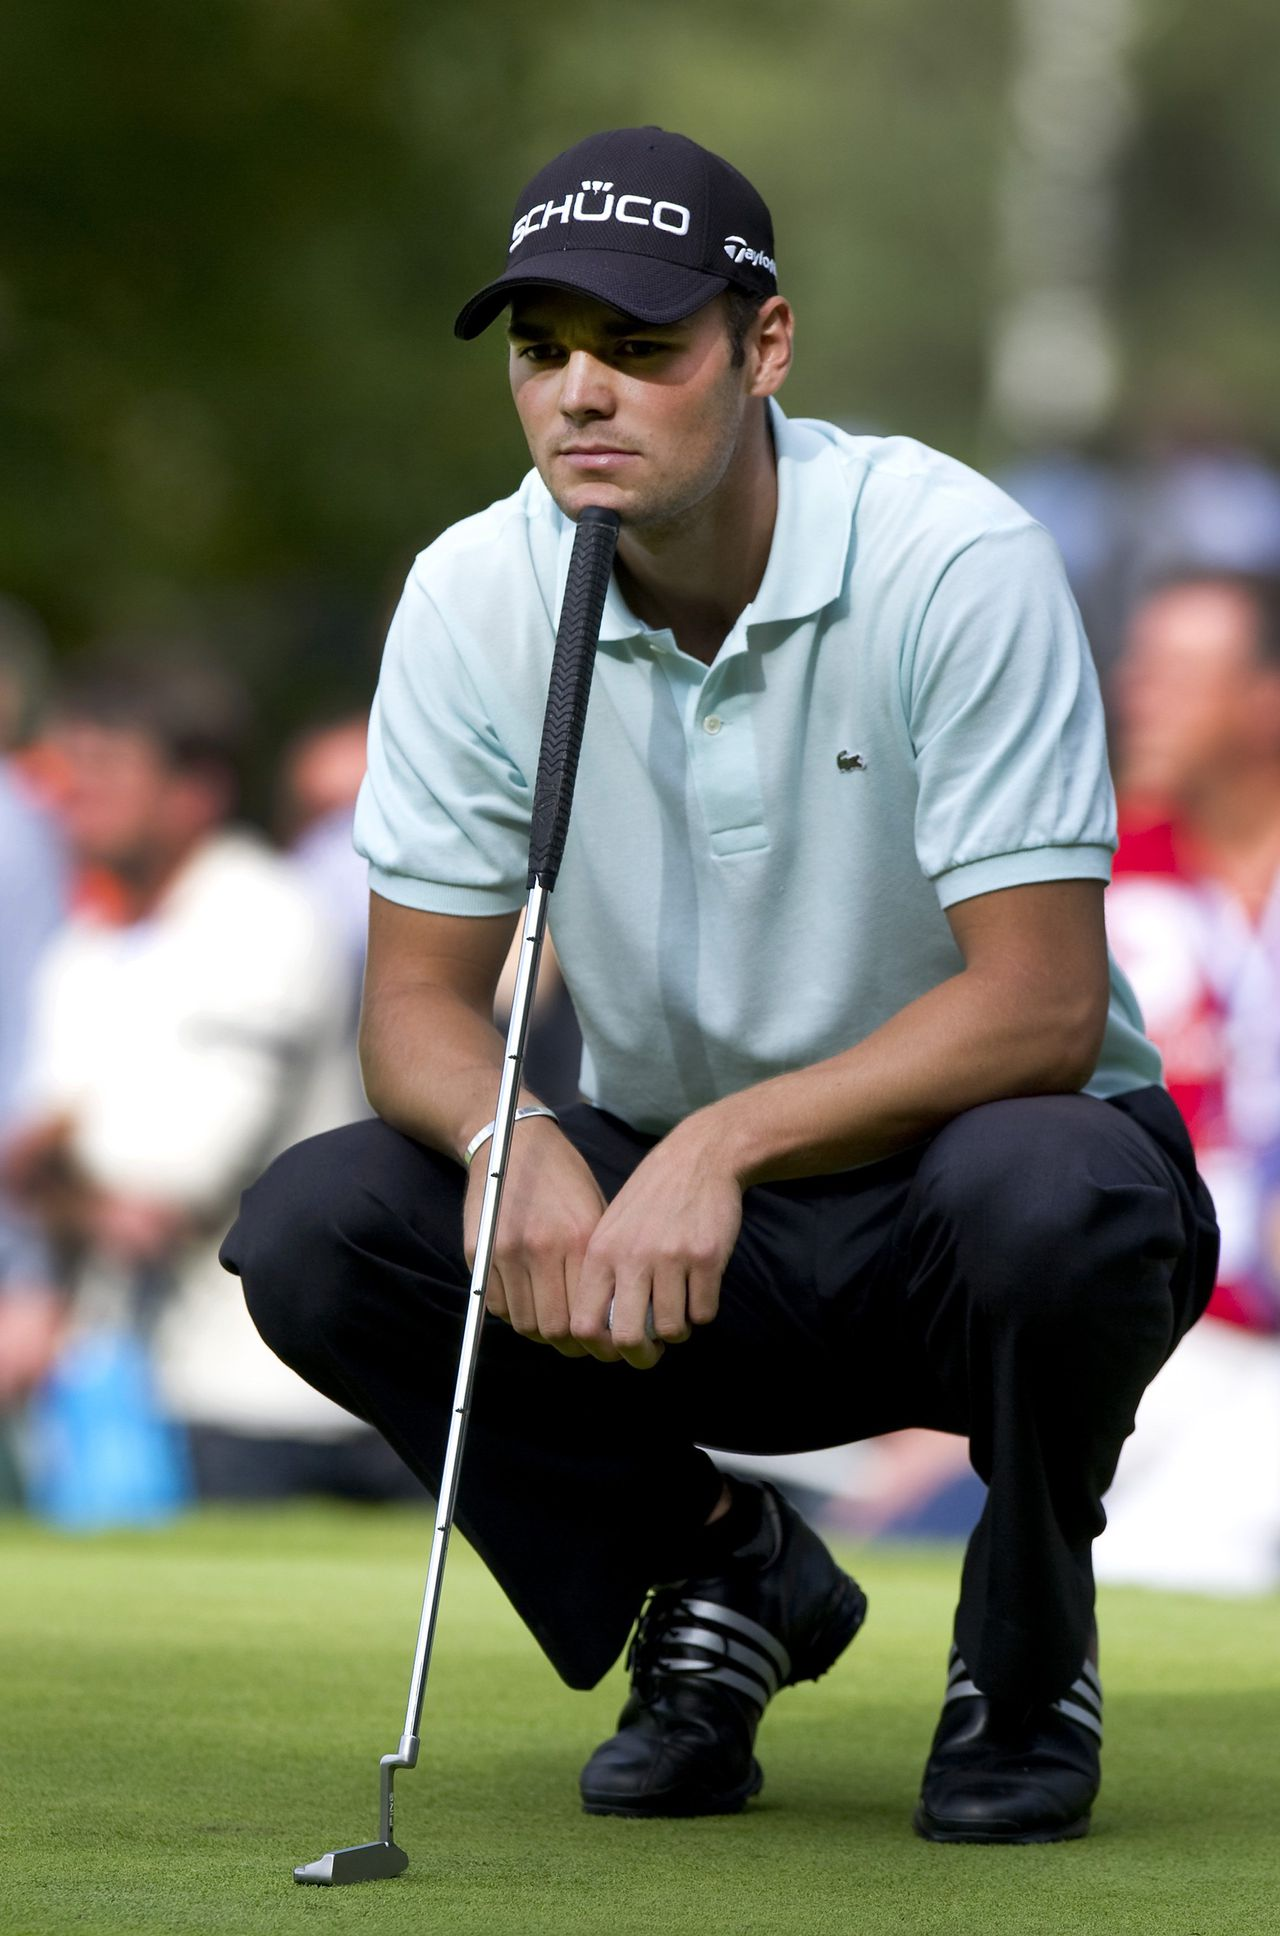 De Duitse golfer Martin Kaymer overpeinst een slag tijdens het KLM Open. Foto Reuters Germany's Martin Kaymer concentrates on the eighth hole on the final day of the KLM Open Golf Tournament in Hilversum September 12, 2010. REUTERS/Paul Vreeker/United Photos (NETHERLANDS - Tags: SPORT GOLF)